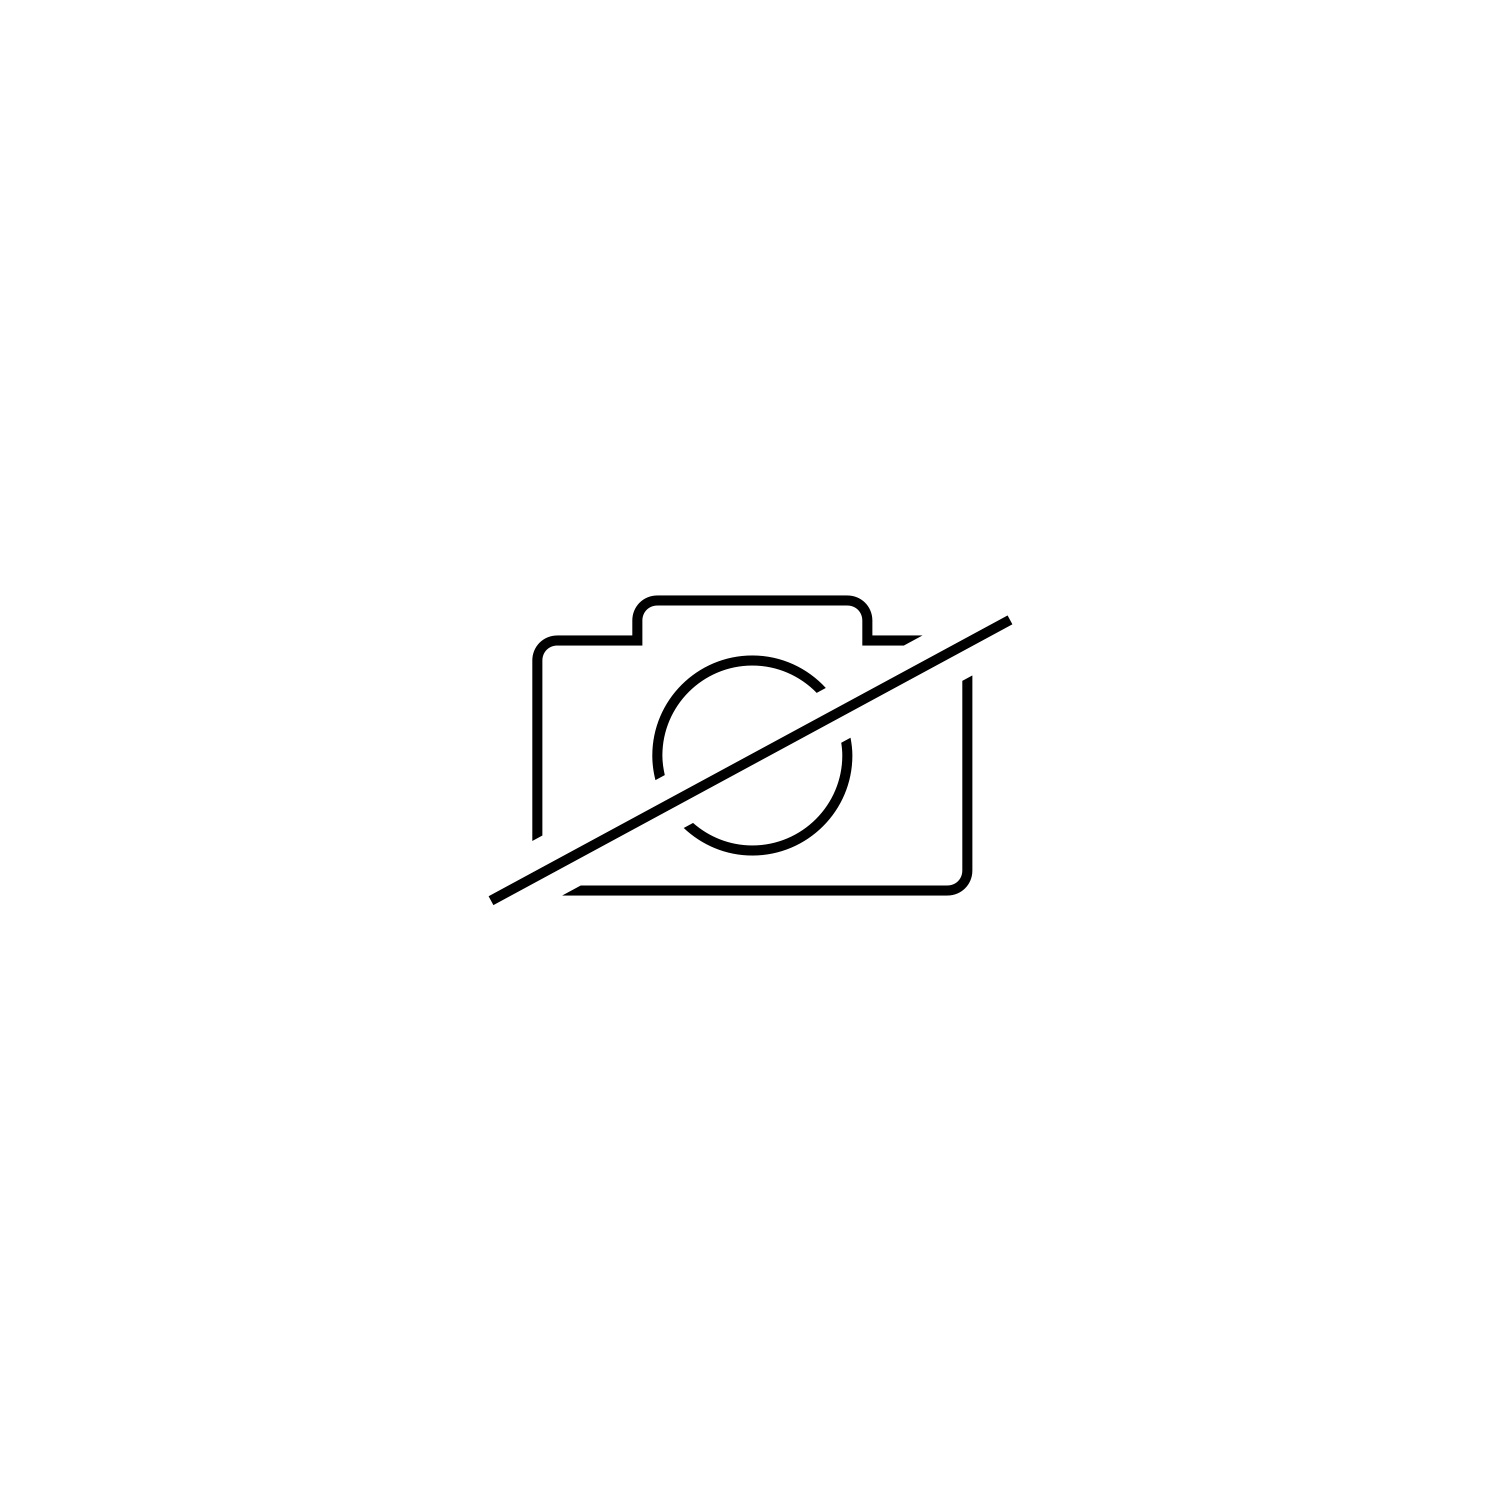 Audi reflective logo jacket e-tron, Mens, Dark grey, L